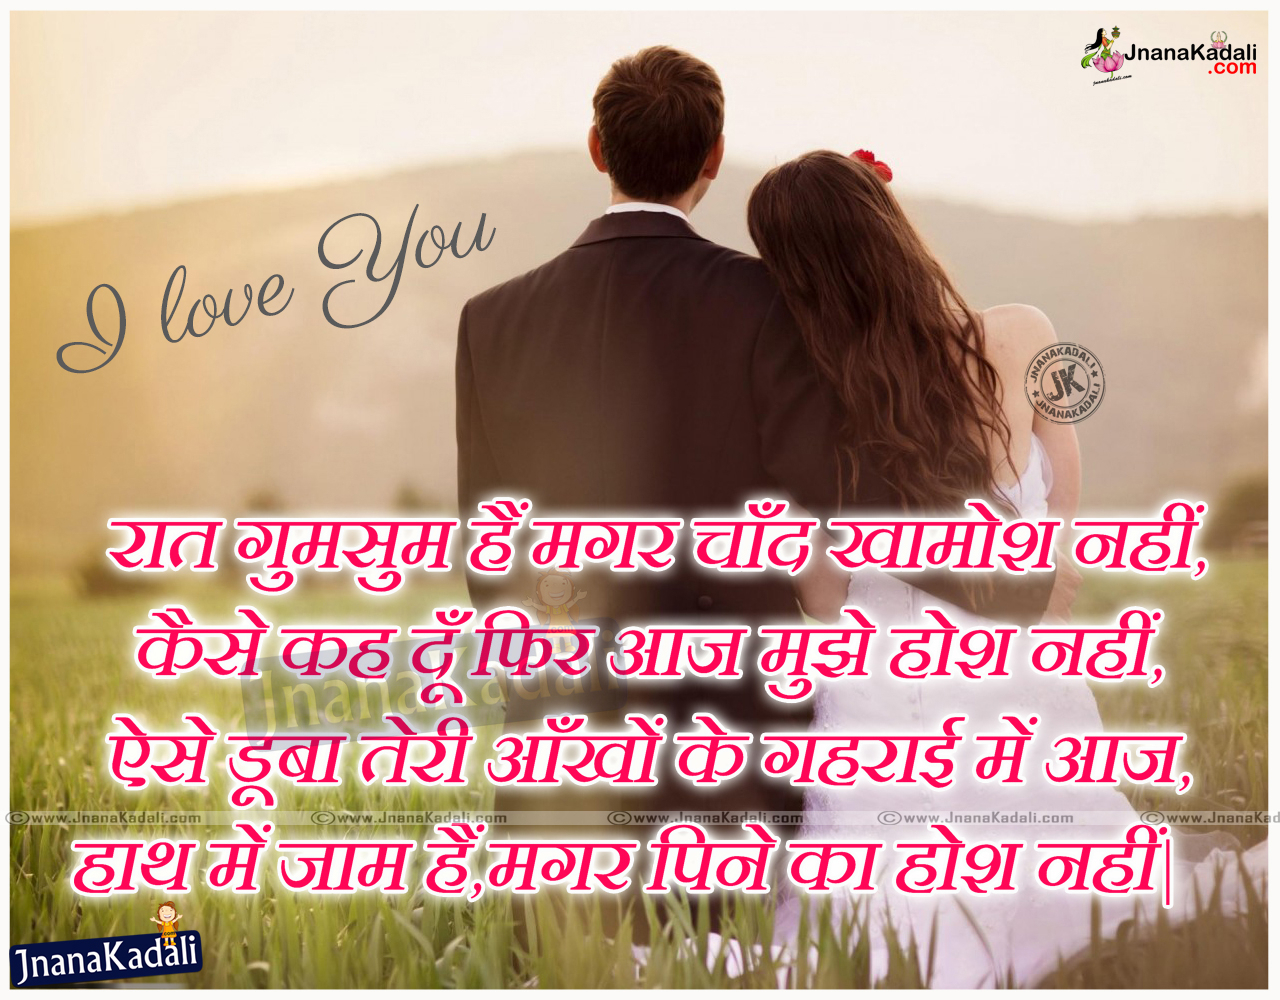 Love Couple Images With Quotes In Hindi One Line Quote In Hindi True Love Shayari In